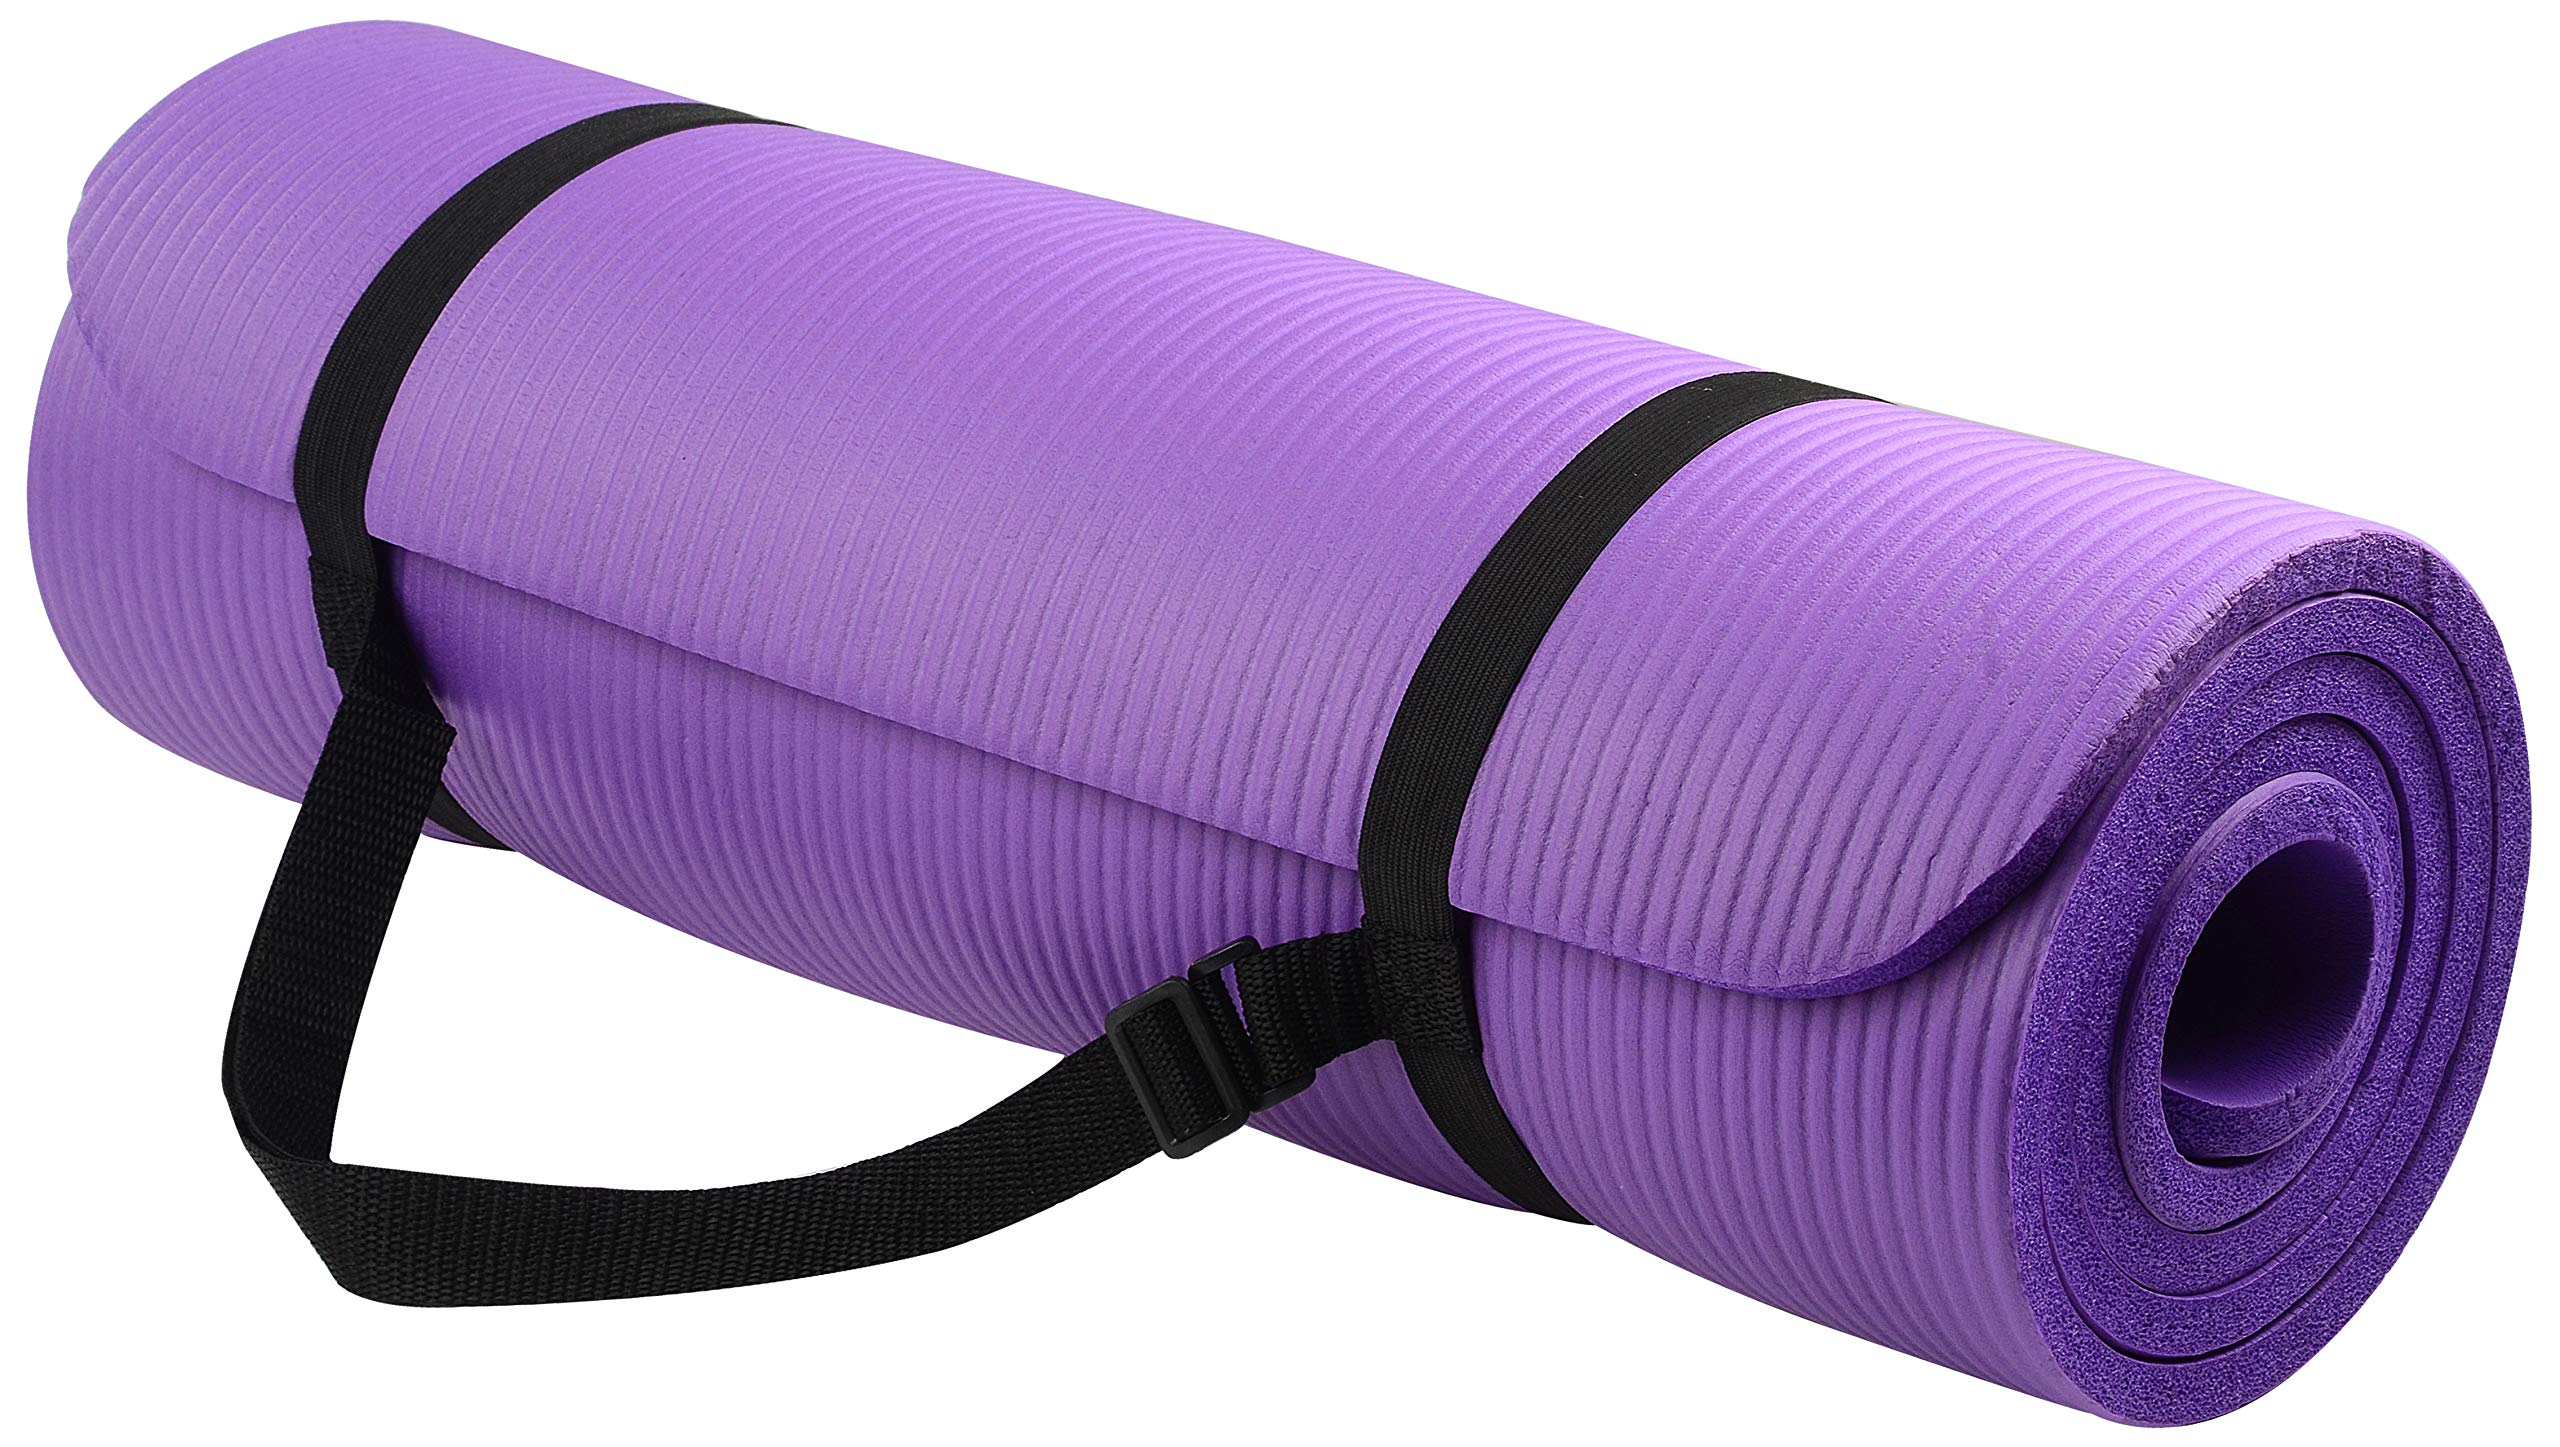 BalanceFrom BFGY-AP6PP Go Yoga All Purpose Anti-Tear Exercise Yoga Mat with Carrying Strap, Purple by BalanceFrom